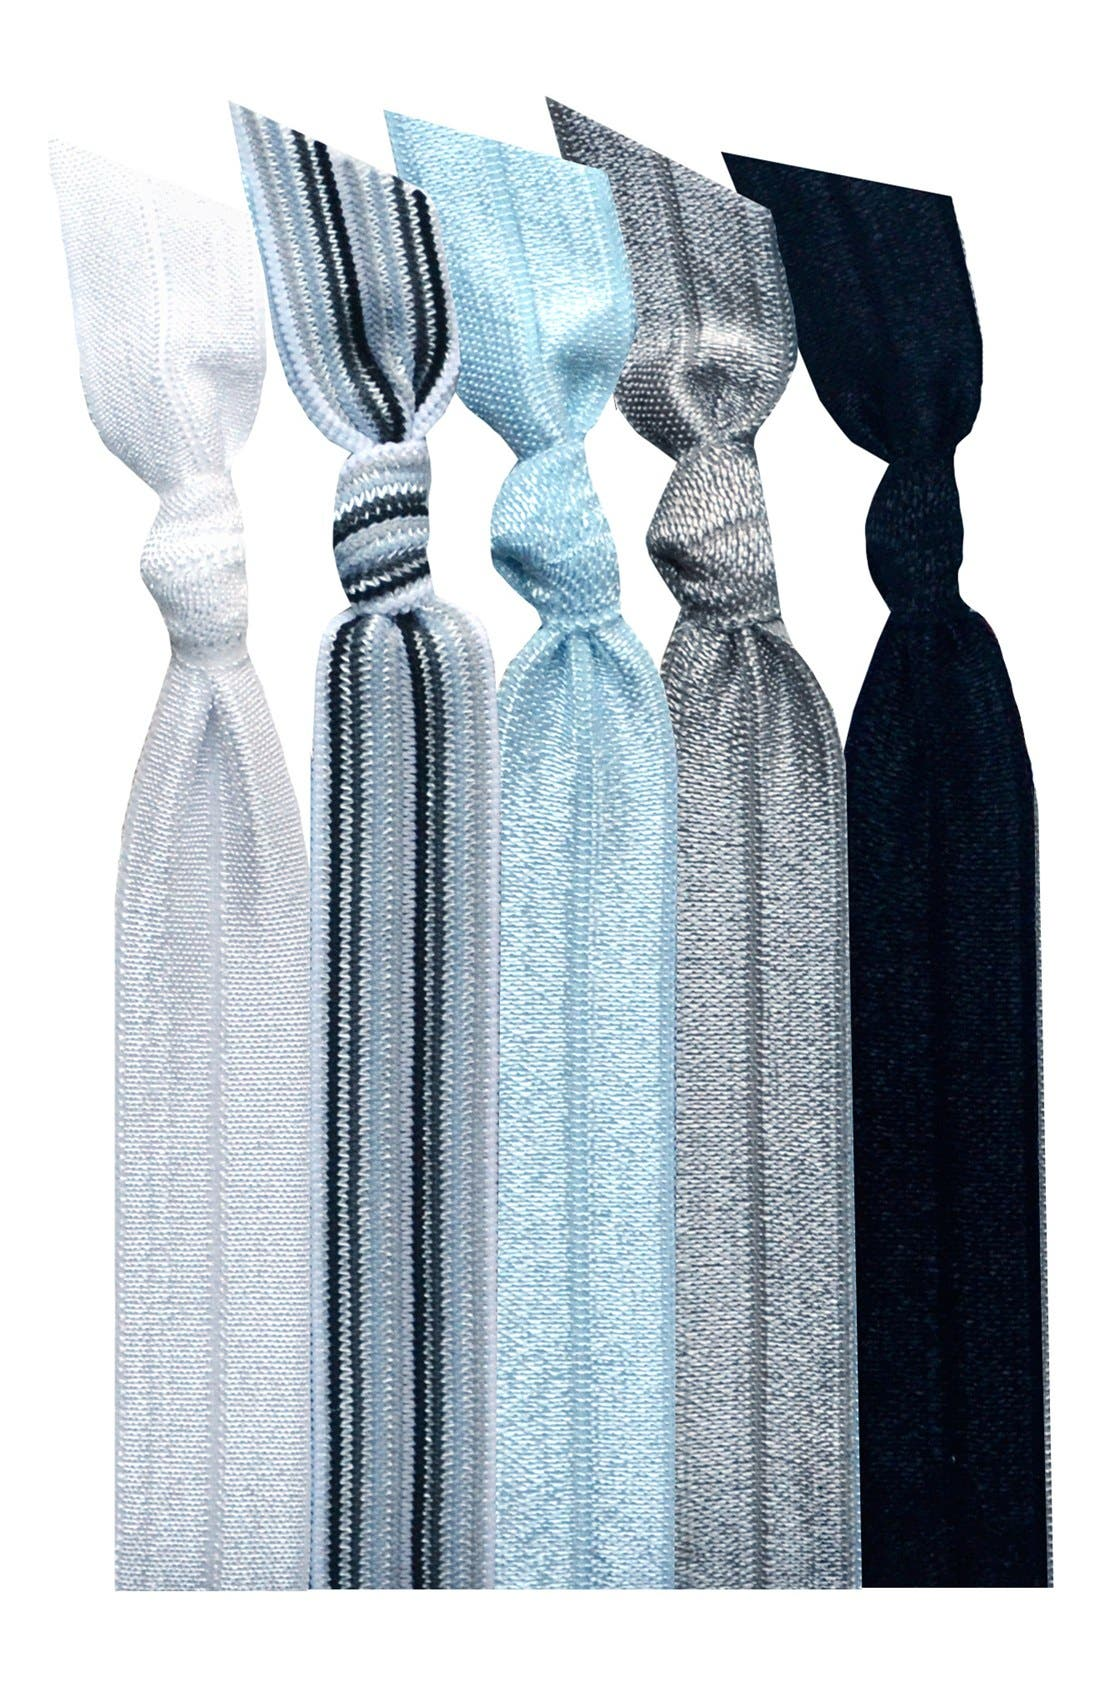 Main Image - Emi-Jay 'Grey Stripe' Hair Ties (5-Pack) ($10.80 Value)